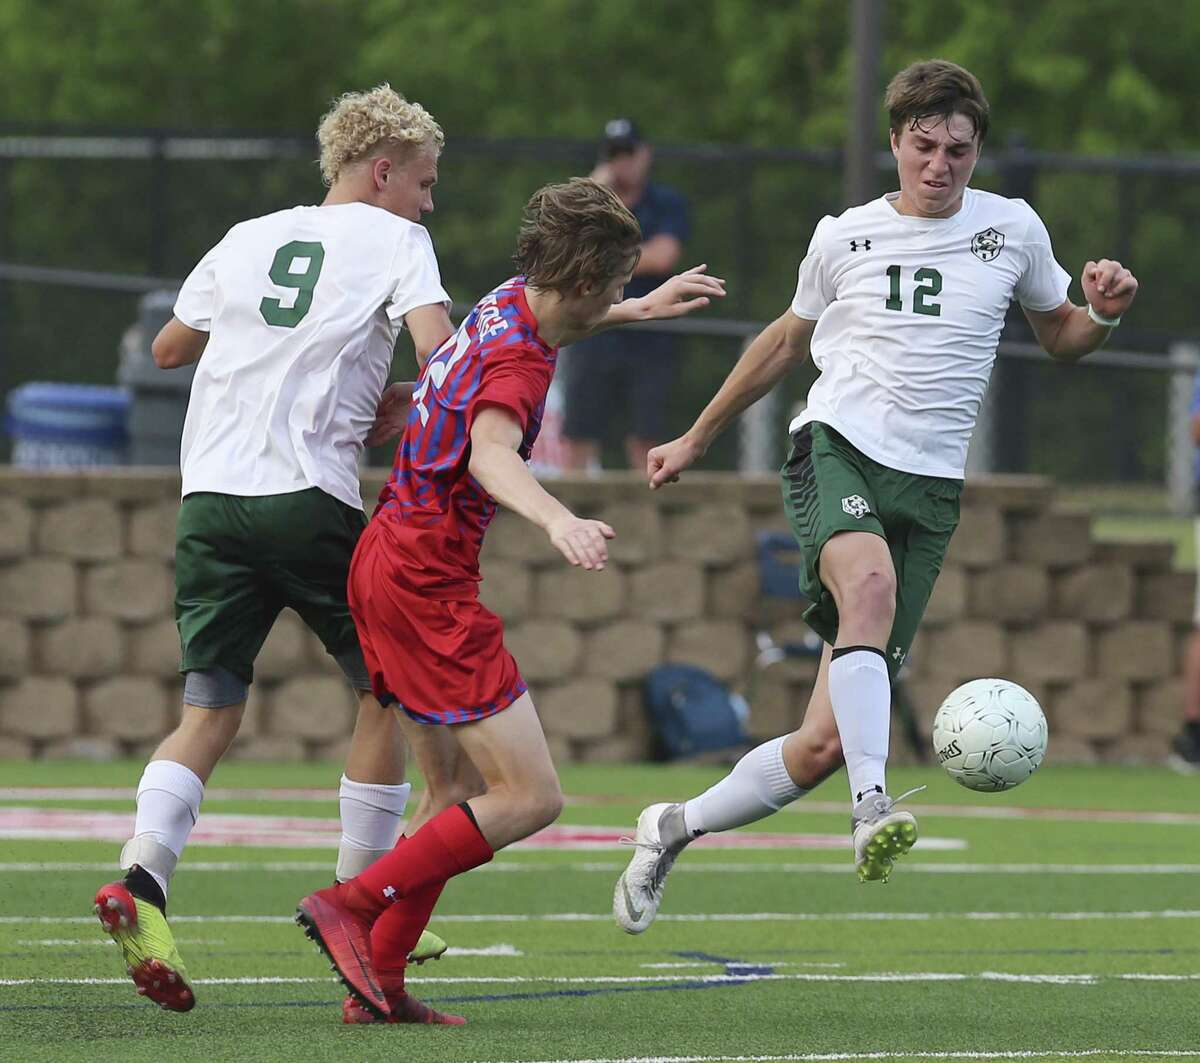 Canyon Lake's Nash Young (right) makes a pass against Midlothian Heritage's Aidan Goodman (left) during the UIL Class 4A boys high school state semifinal game in Georgetown, Texas on Wednesday, Apr. 17, 2019. Canyon Lake ended their playoff run with a 1-2 loss to Midlothian. (Kin Man Hui/San Antonio Express-News)